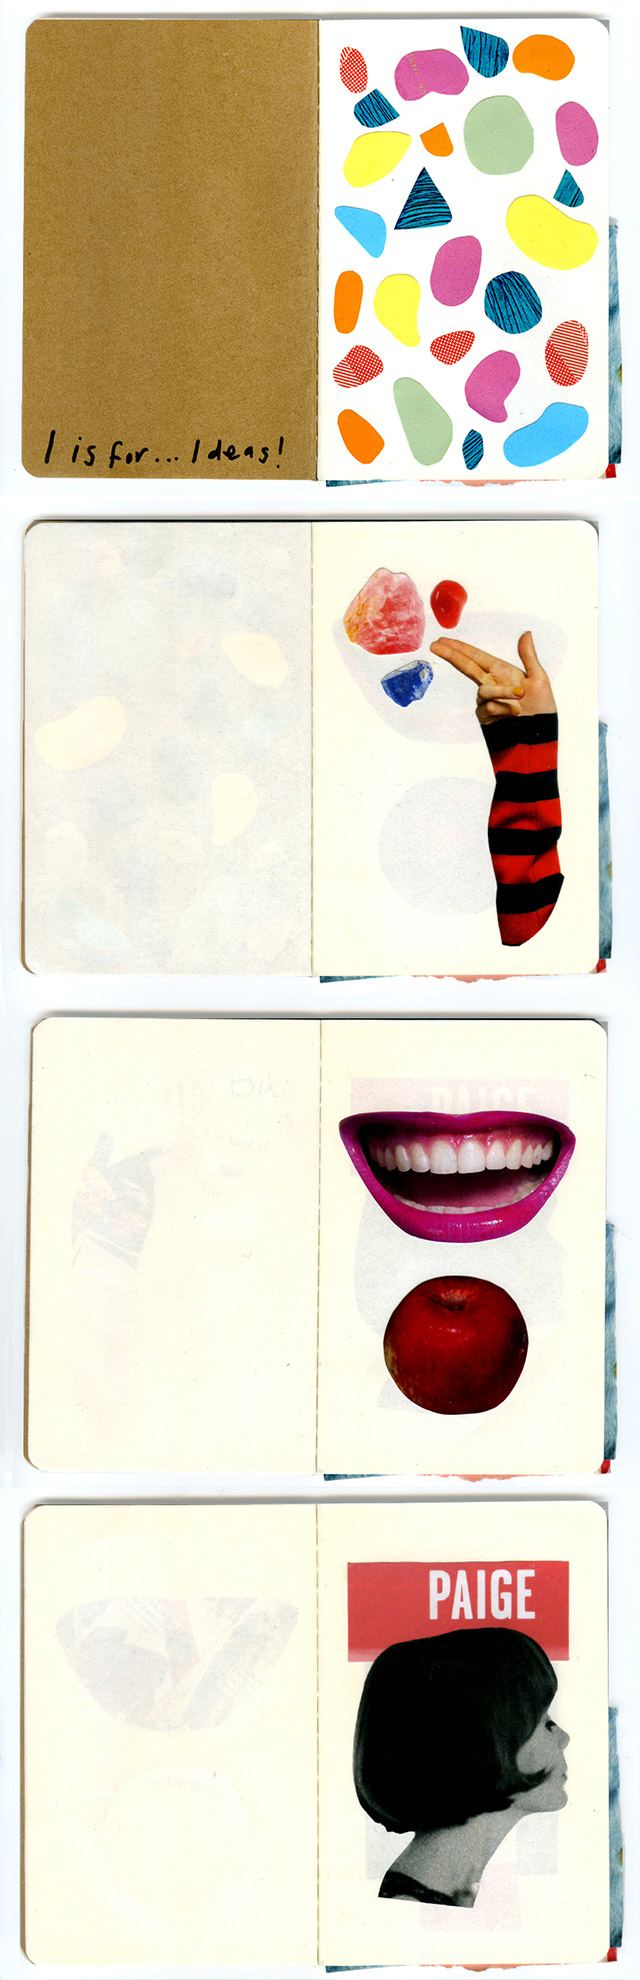 collage sketchbook pages 1-4 by laura redburn